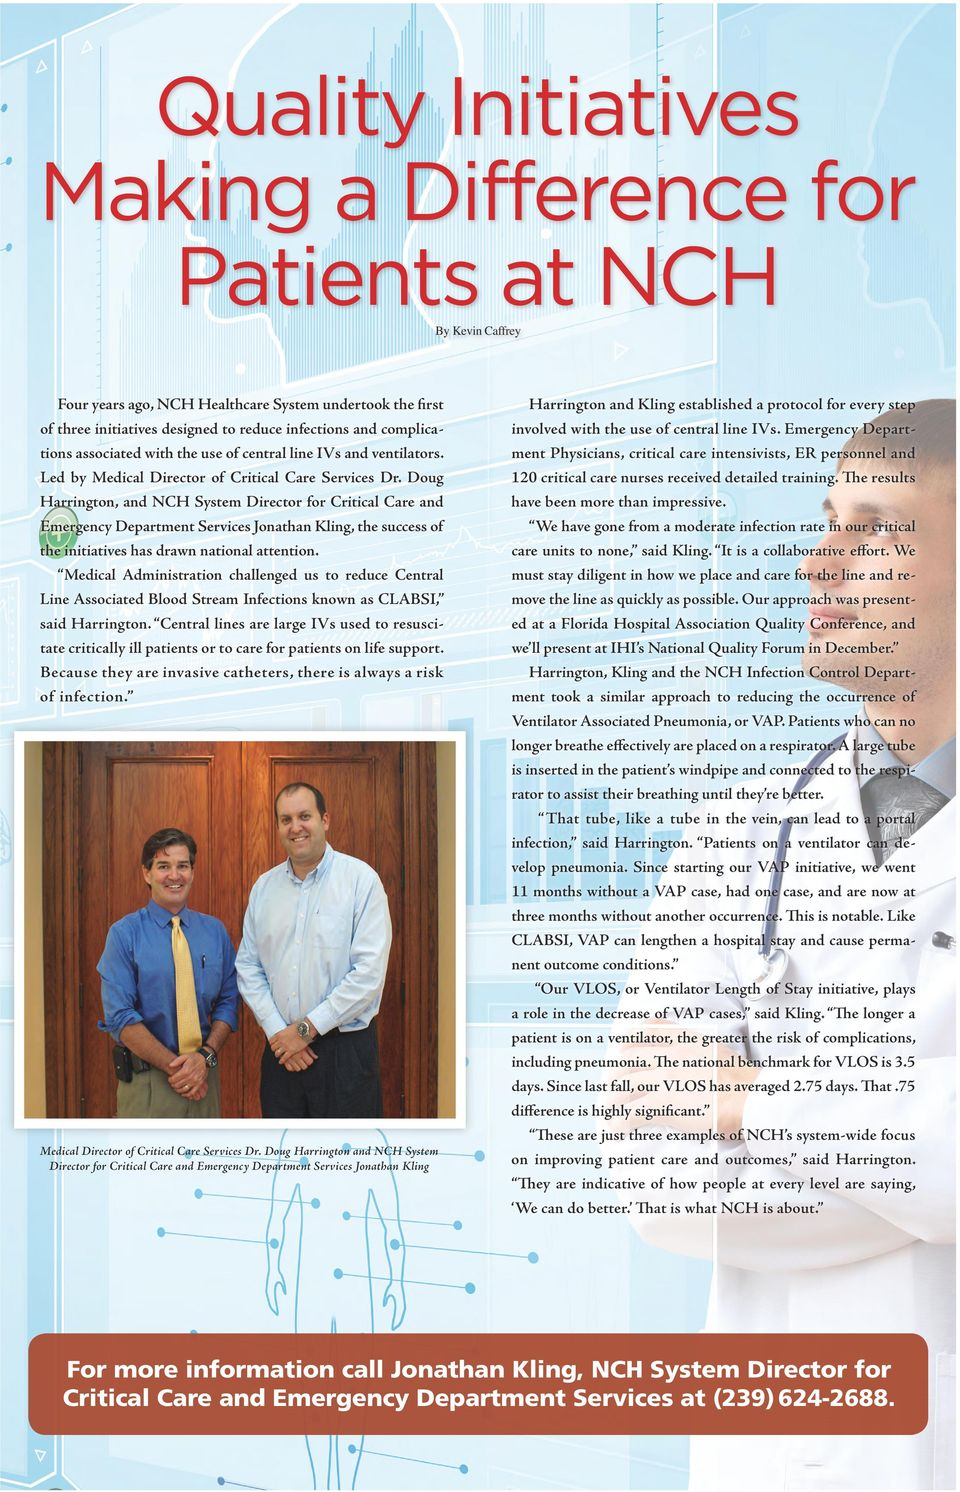 Doug Harrington, and NCH System Director for Critical Care and Emergency Department Services Jonathan Kling, the success of the initiatives has drawn national attention.